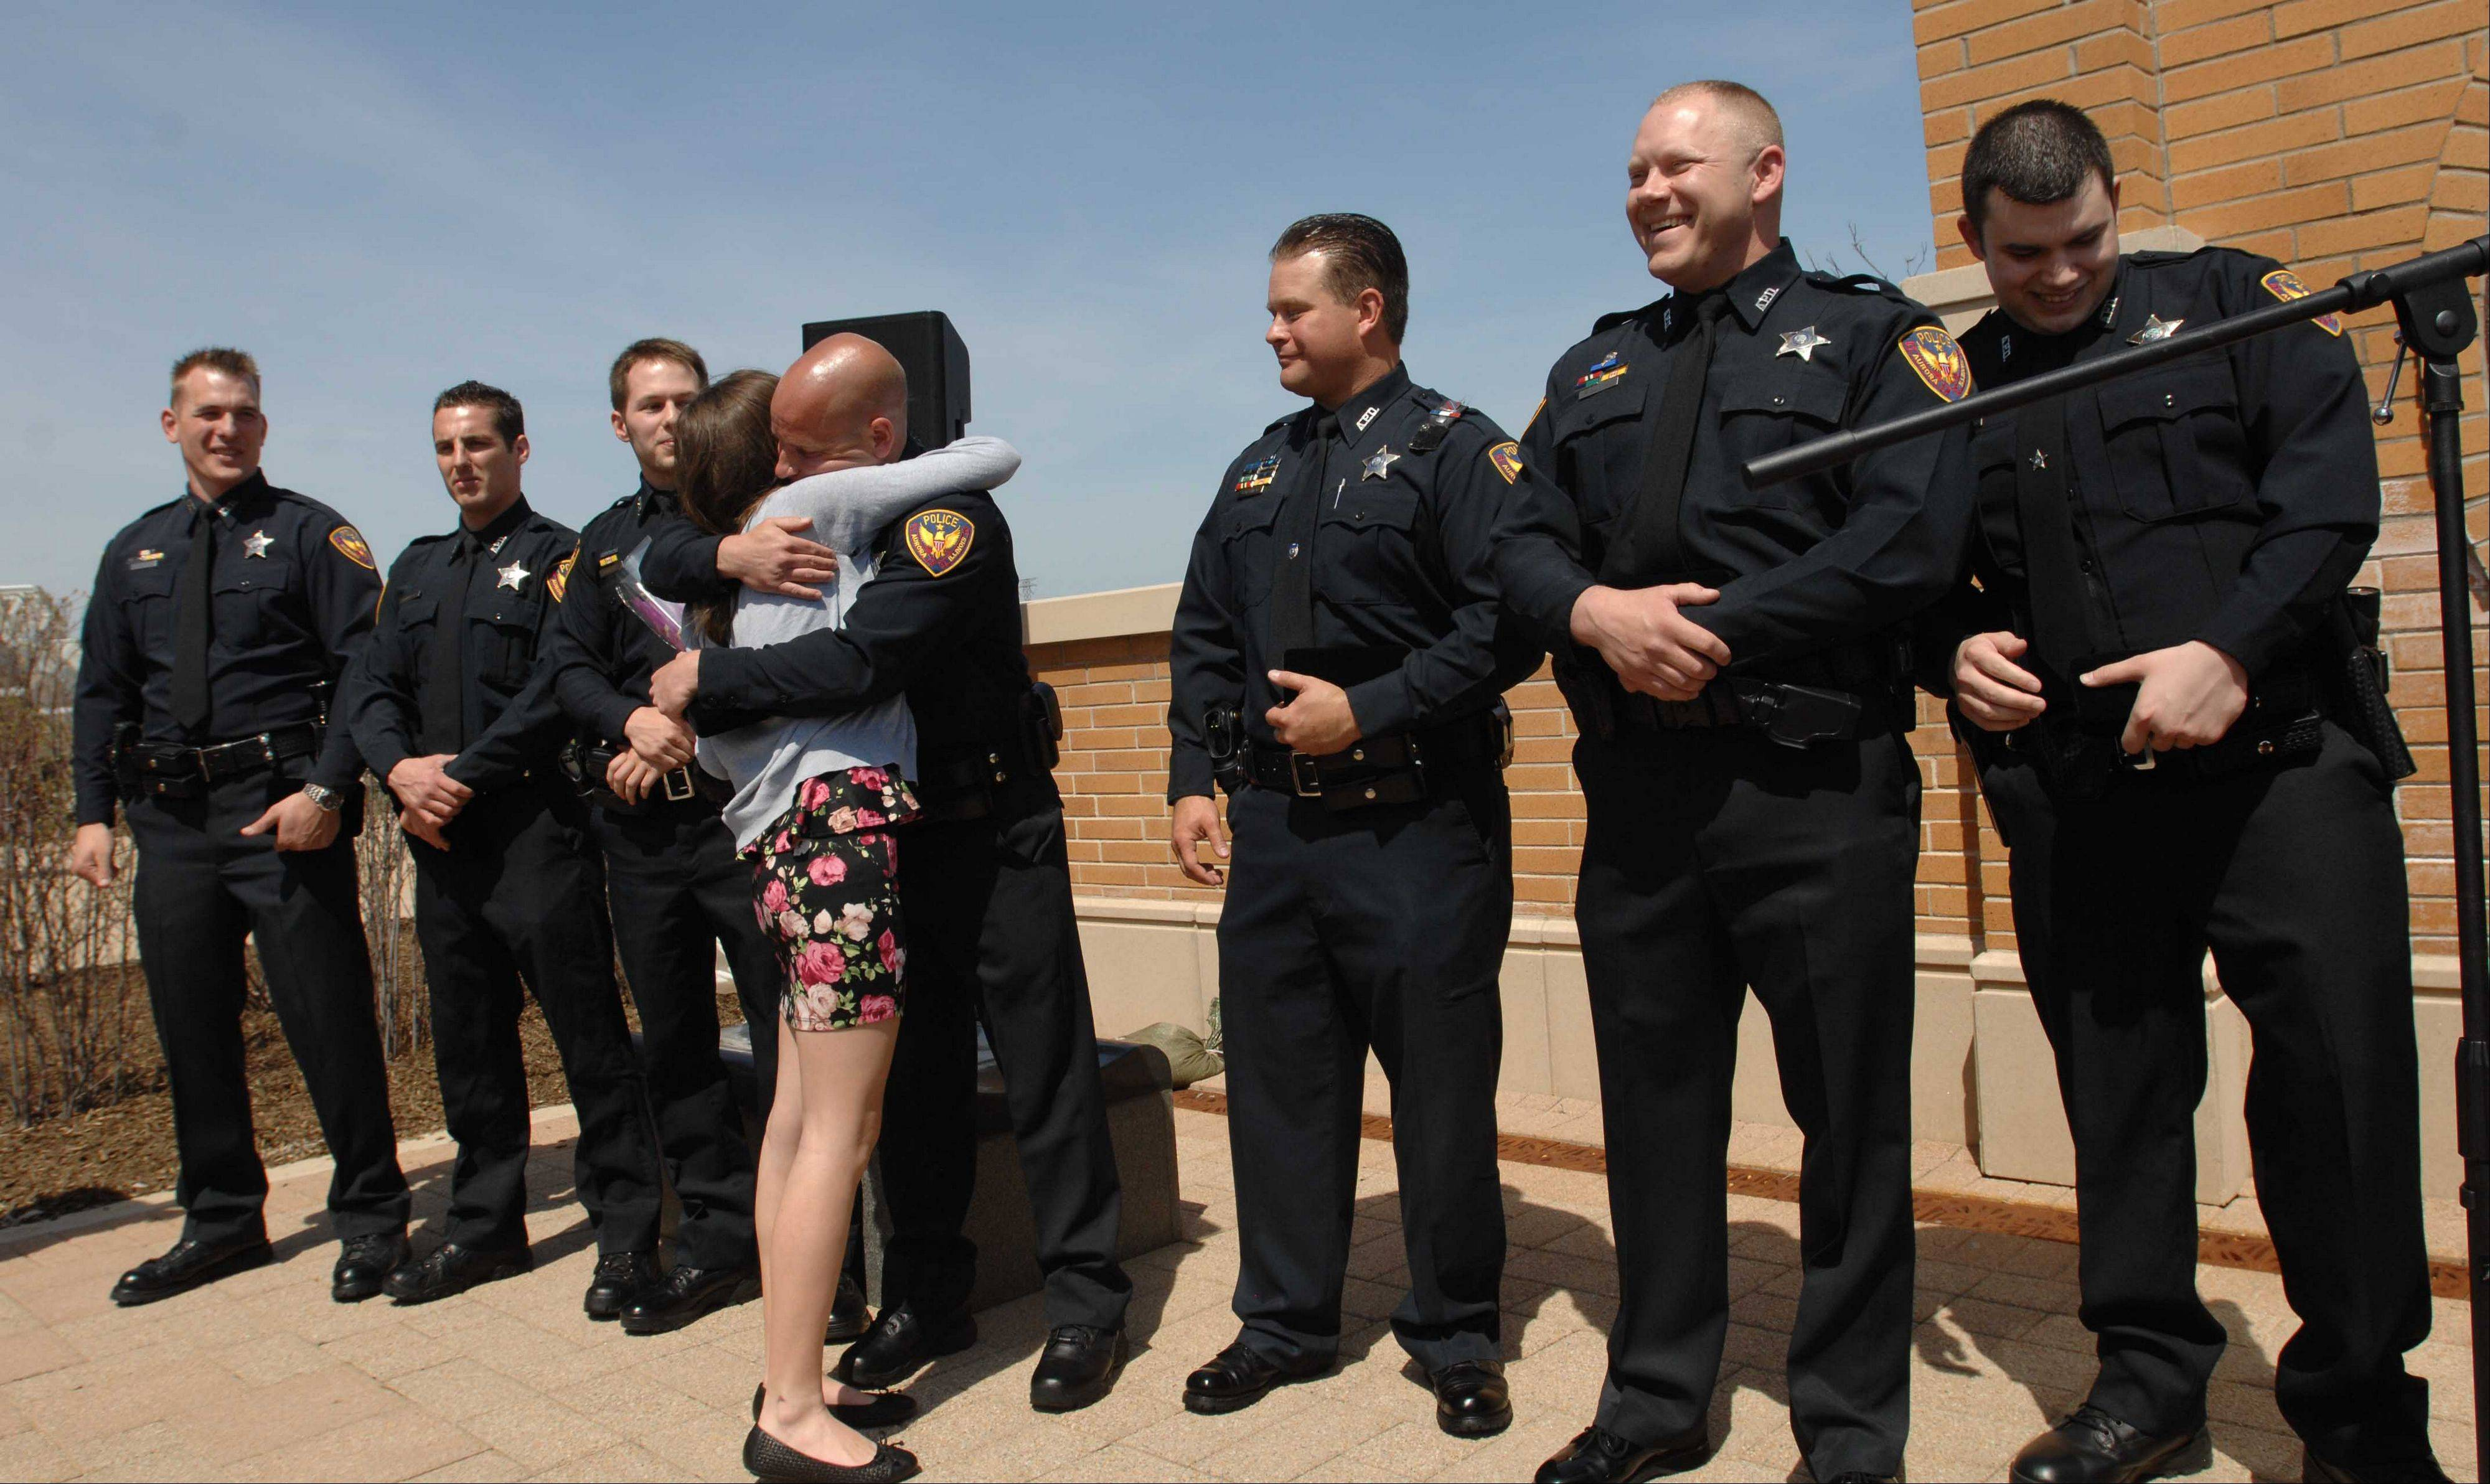 Aurora police investigators Edwin Doepel, Erik Swastek, Greg Christoffel, Jeffrey Hahn, Nicholas Gartner, Joshua Sullivan and officer Chris Coronado wait for a hug from 14-year-old Annie Prosser of Batavia as they are recognized Tuesday afternoon with the Medal of Valor for helping rescue Annie from a car submerged in a pond.